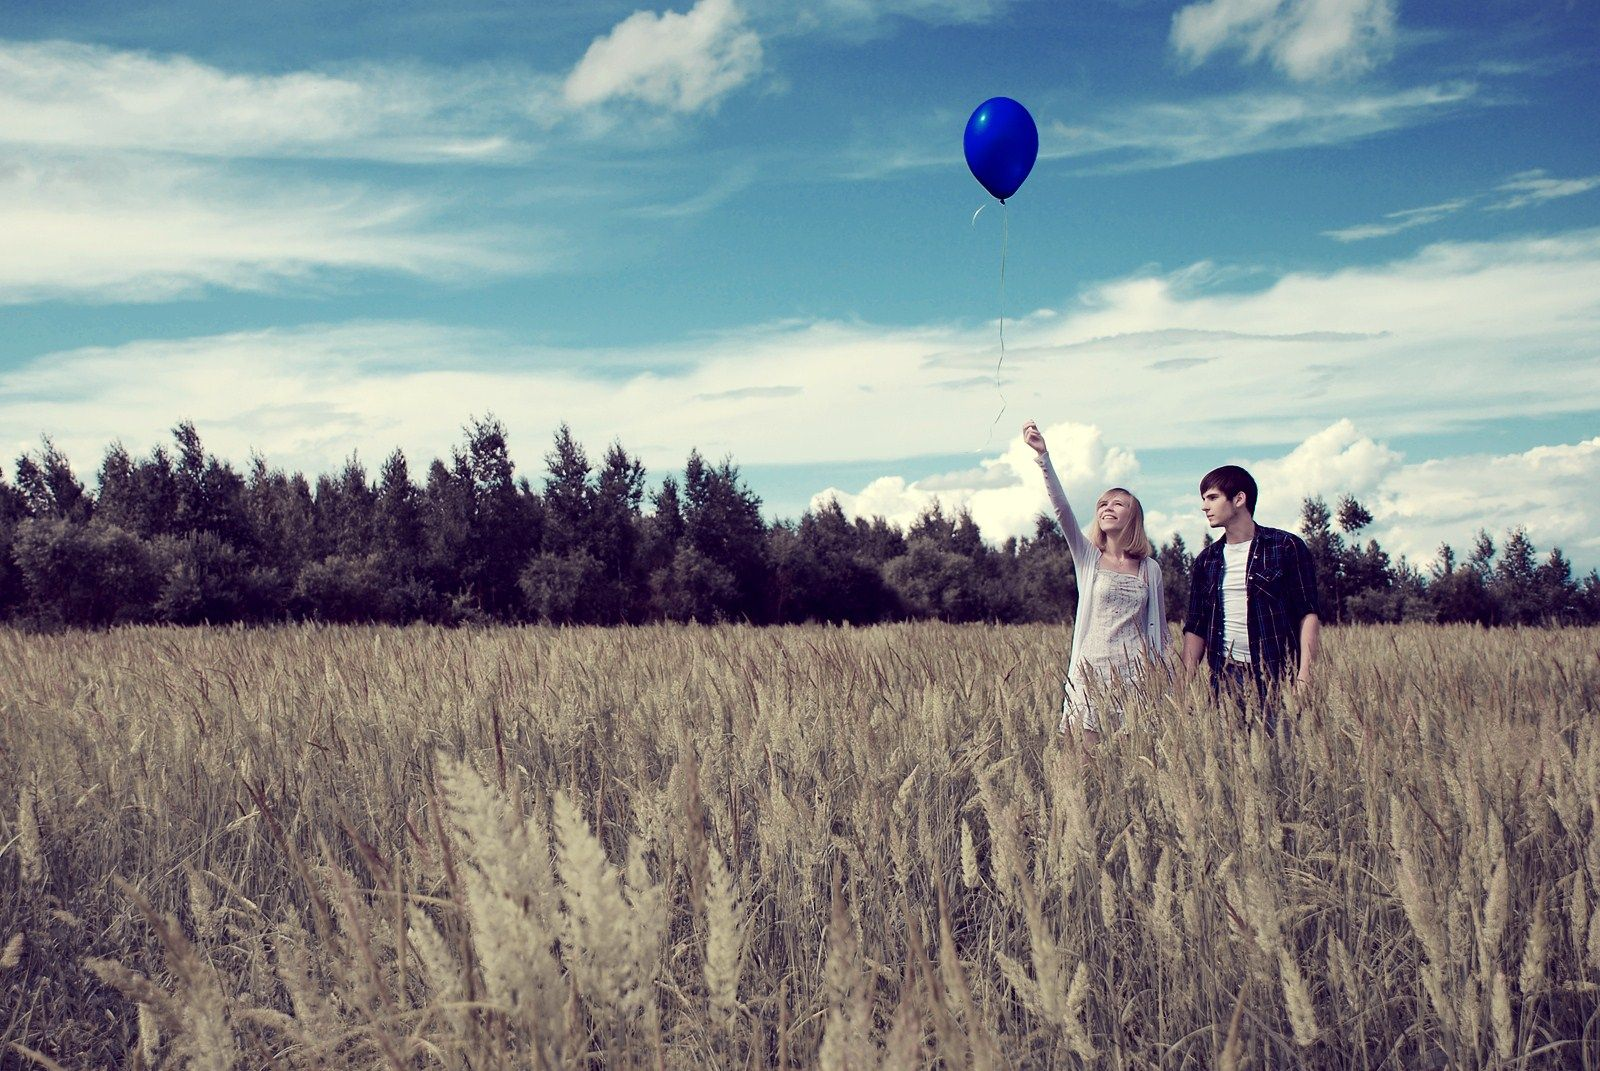 Amazing Wallpaper High Quality Couple - a853cfaa10dba828cf098a1f660336fc  Perfect Image Reference_72457.jpg